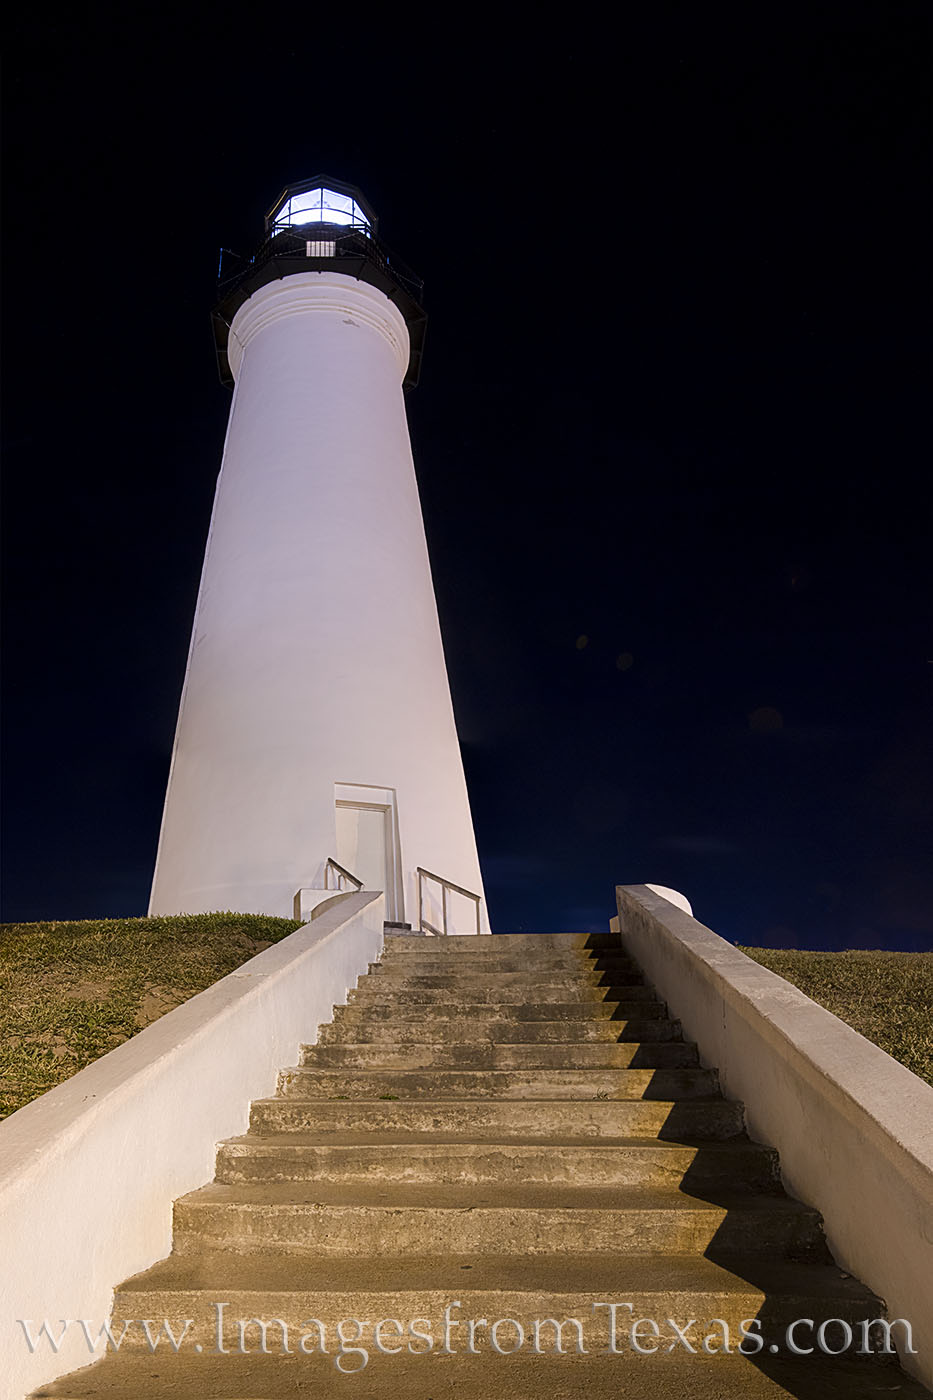 The lighthouse in Port Isabel rises into the night sky. Built in 1852, it served as a beacon for ships for many years. Now, it...